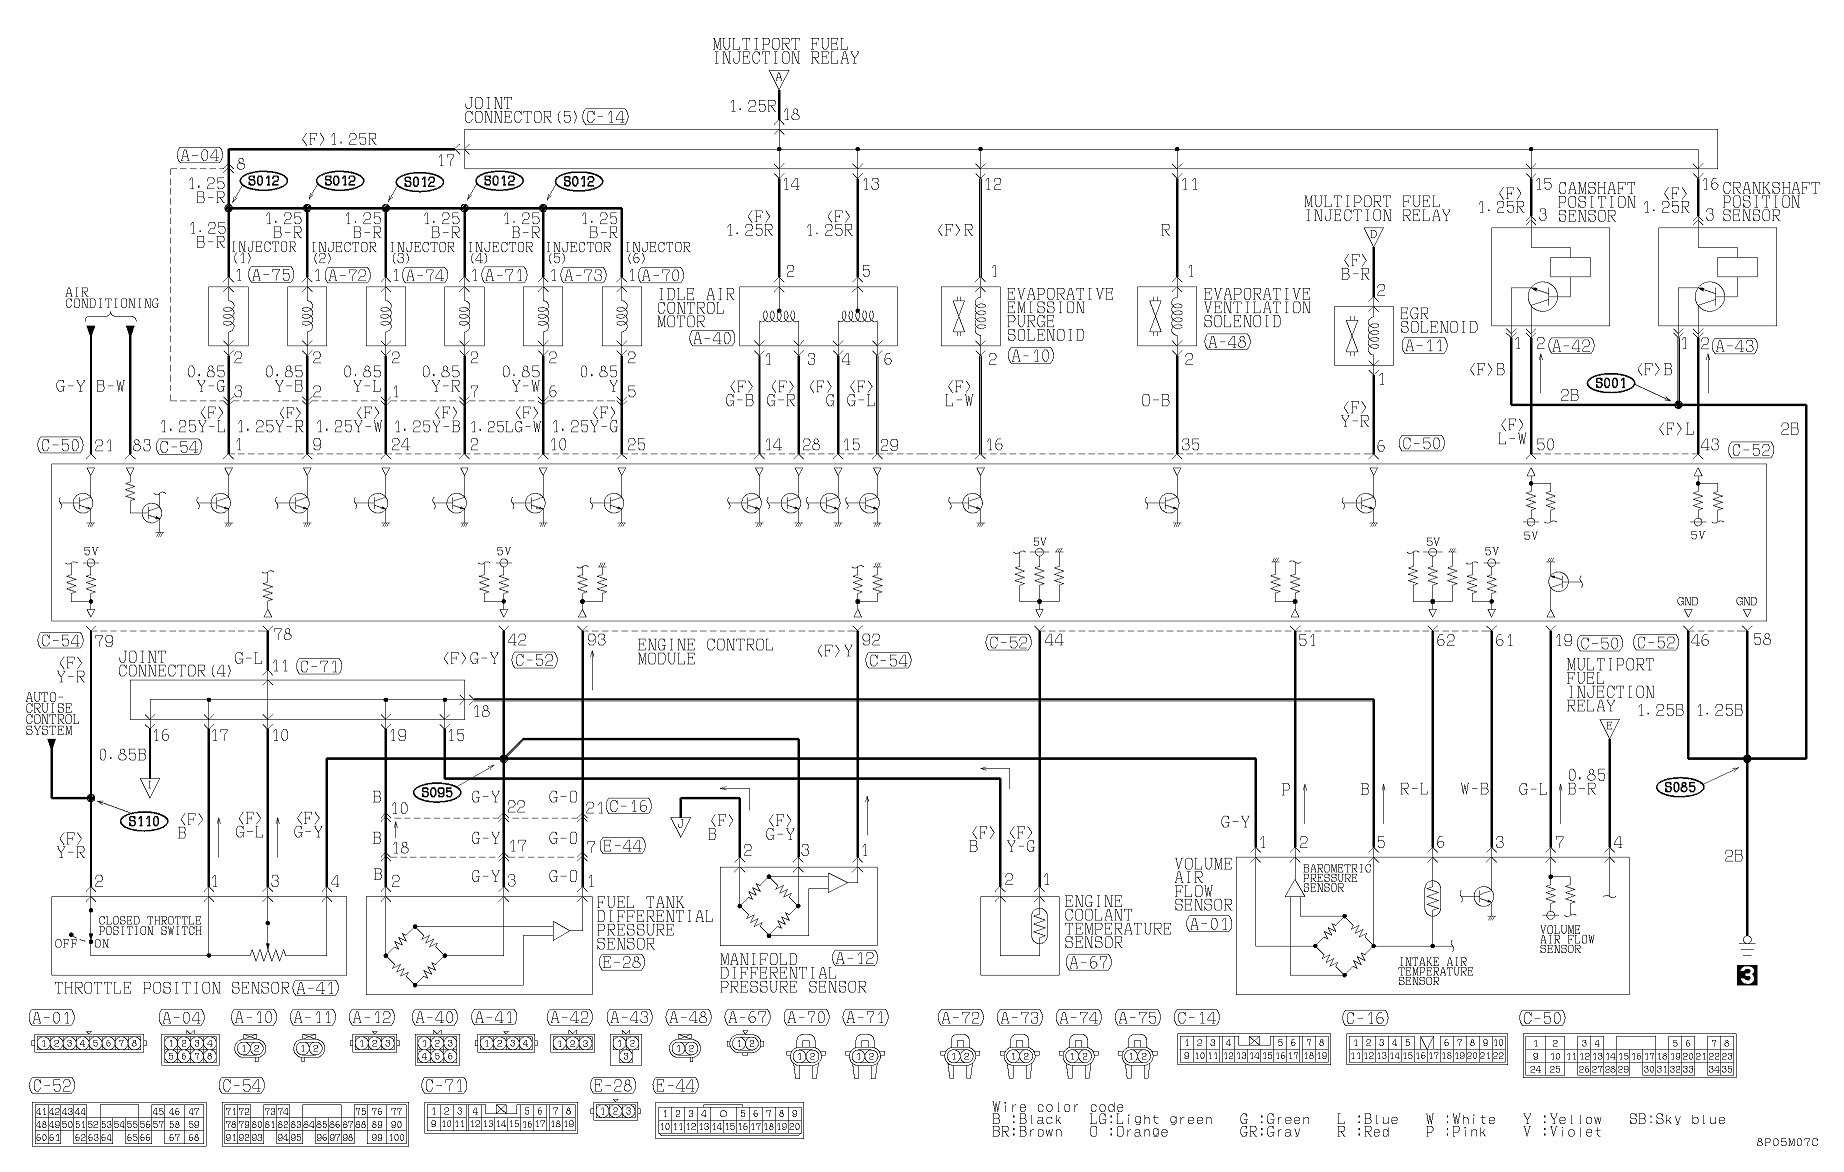 98 montero fuse diagram - wiring diagram data 2003 mitsubishi montero sport wiring diagram  sound-cottbus.de